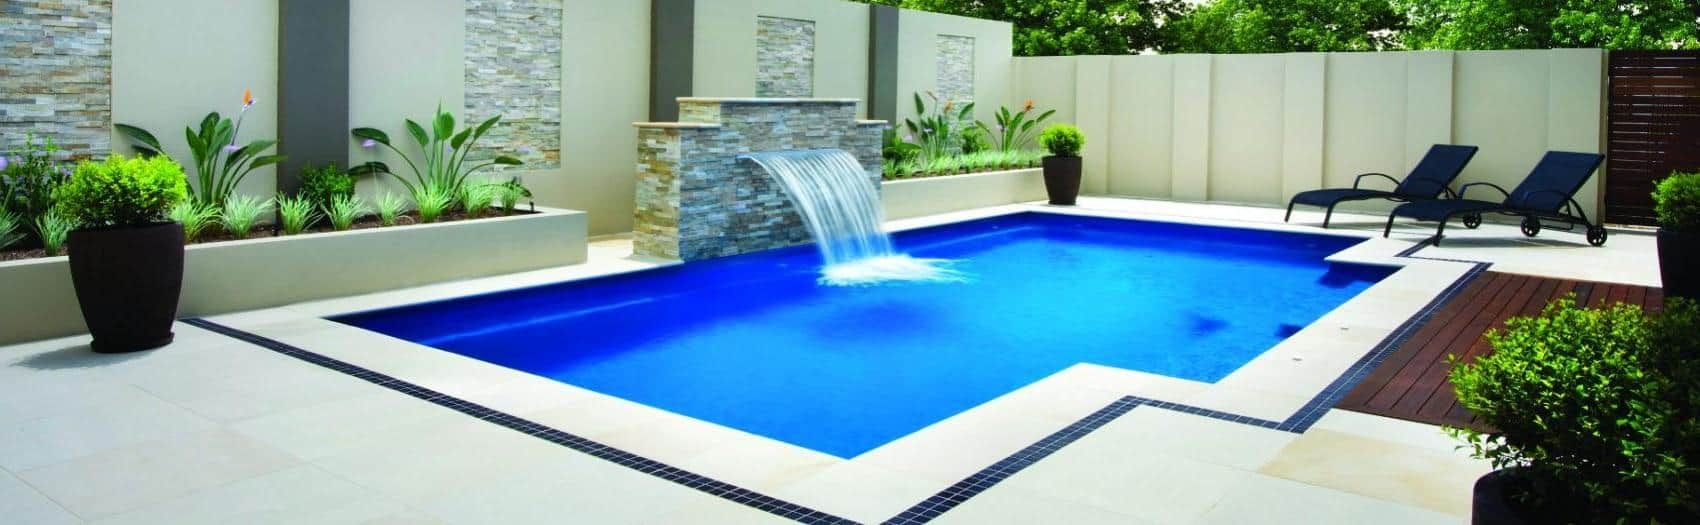 Adorable Swimming Pool Design With Minimalist Concept And Waterfall - Swimming-pool-designs-with-waterfalls